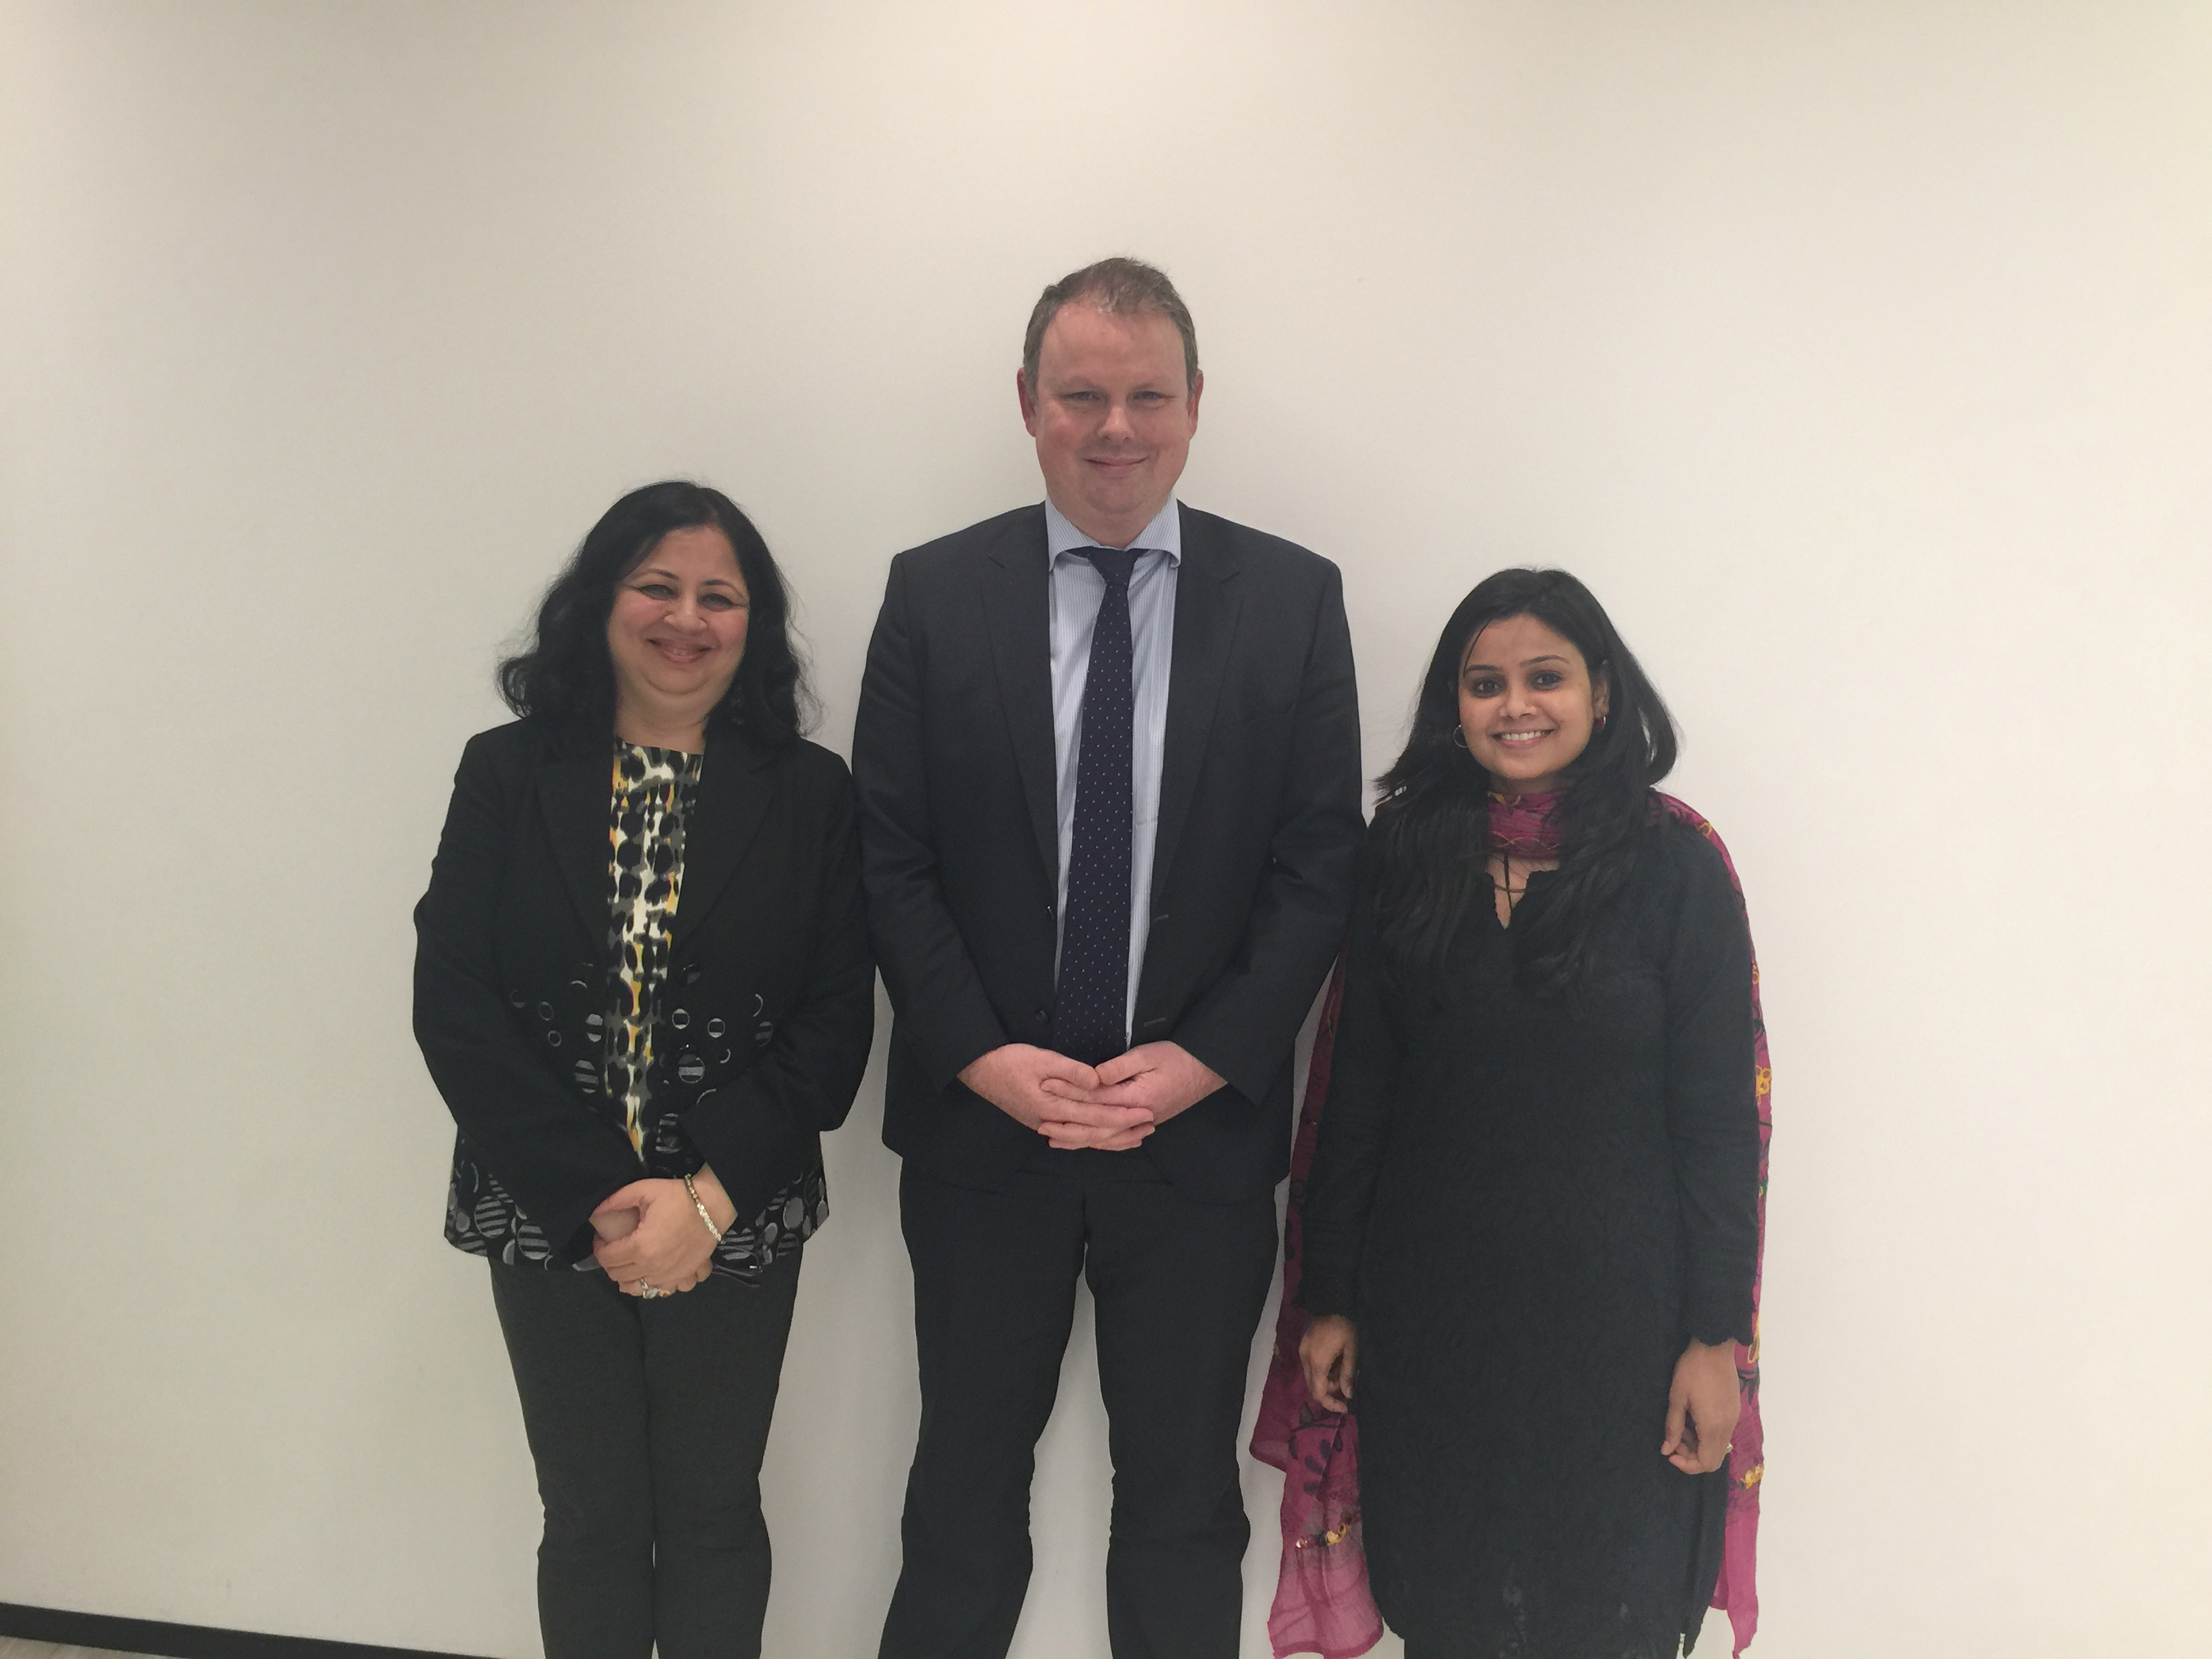 Usha and Dr Kiran with Nicholas Gray, CEO of Australia's National Newspaper - The Australian